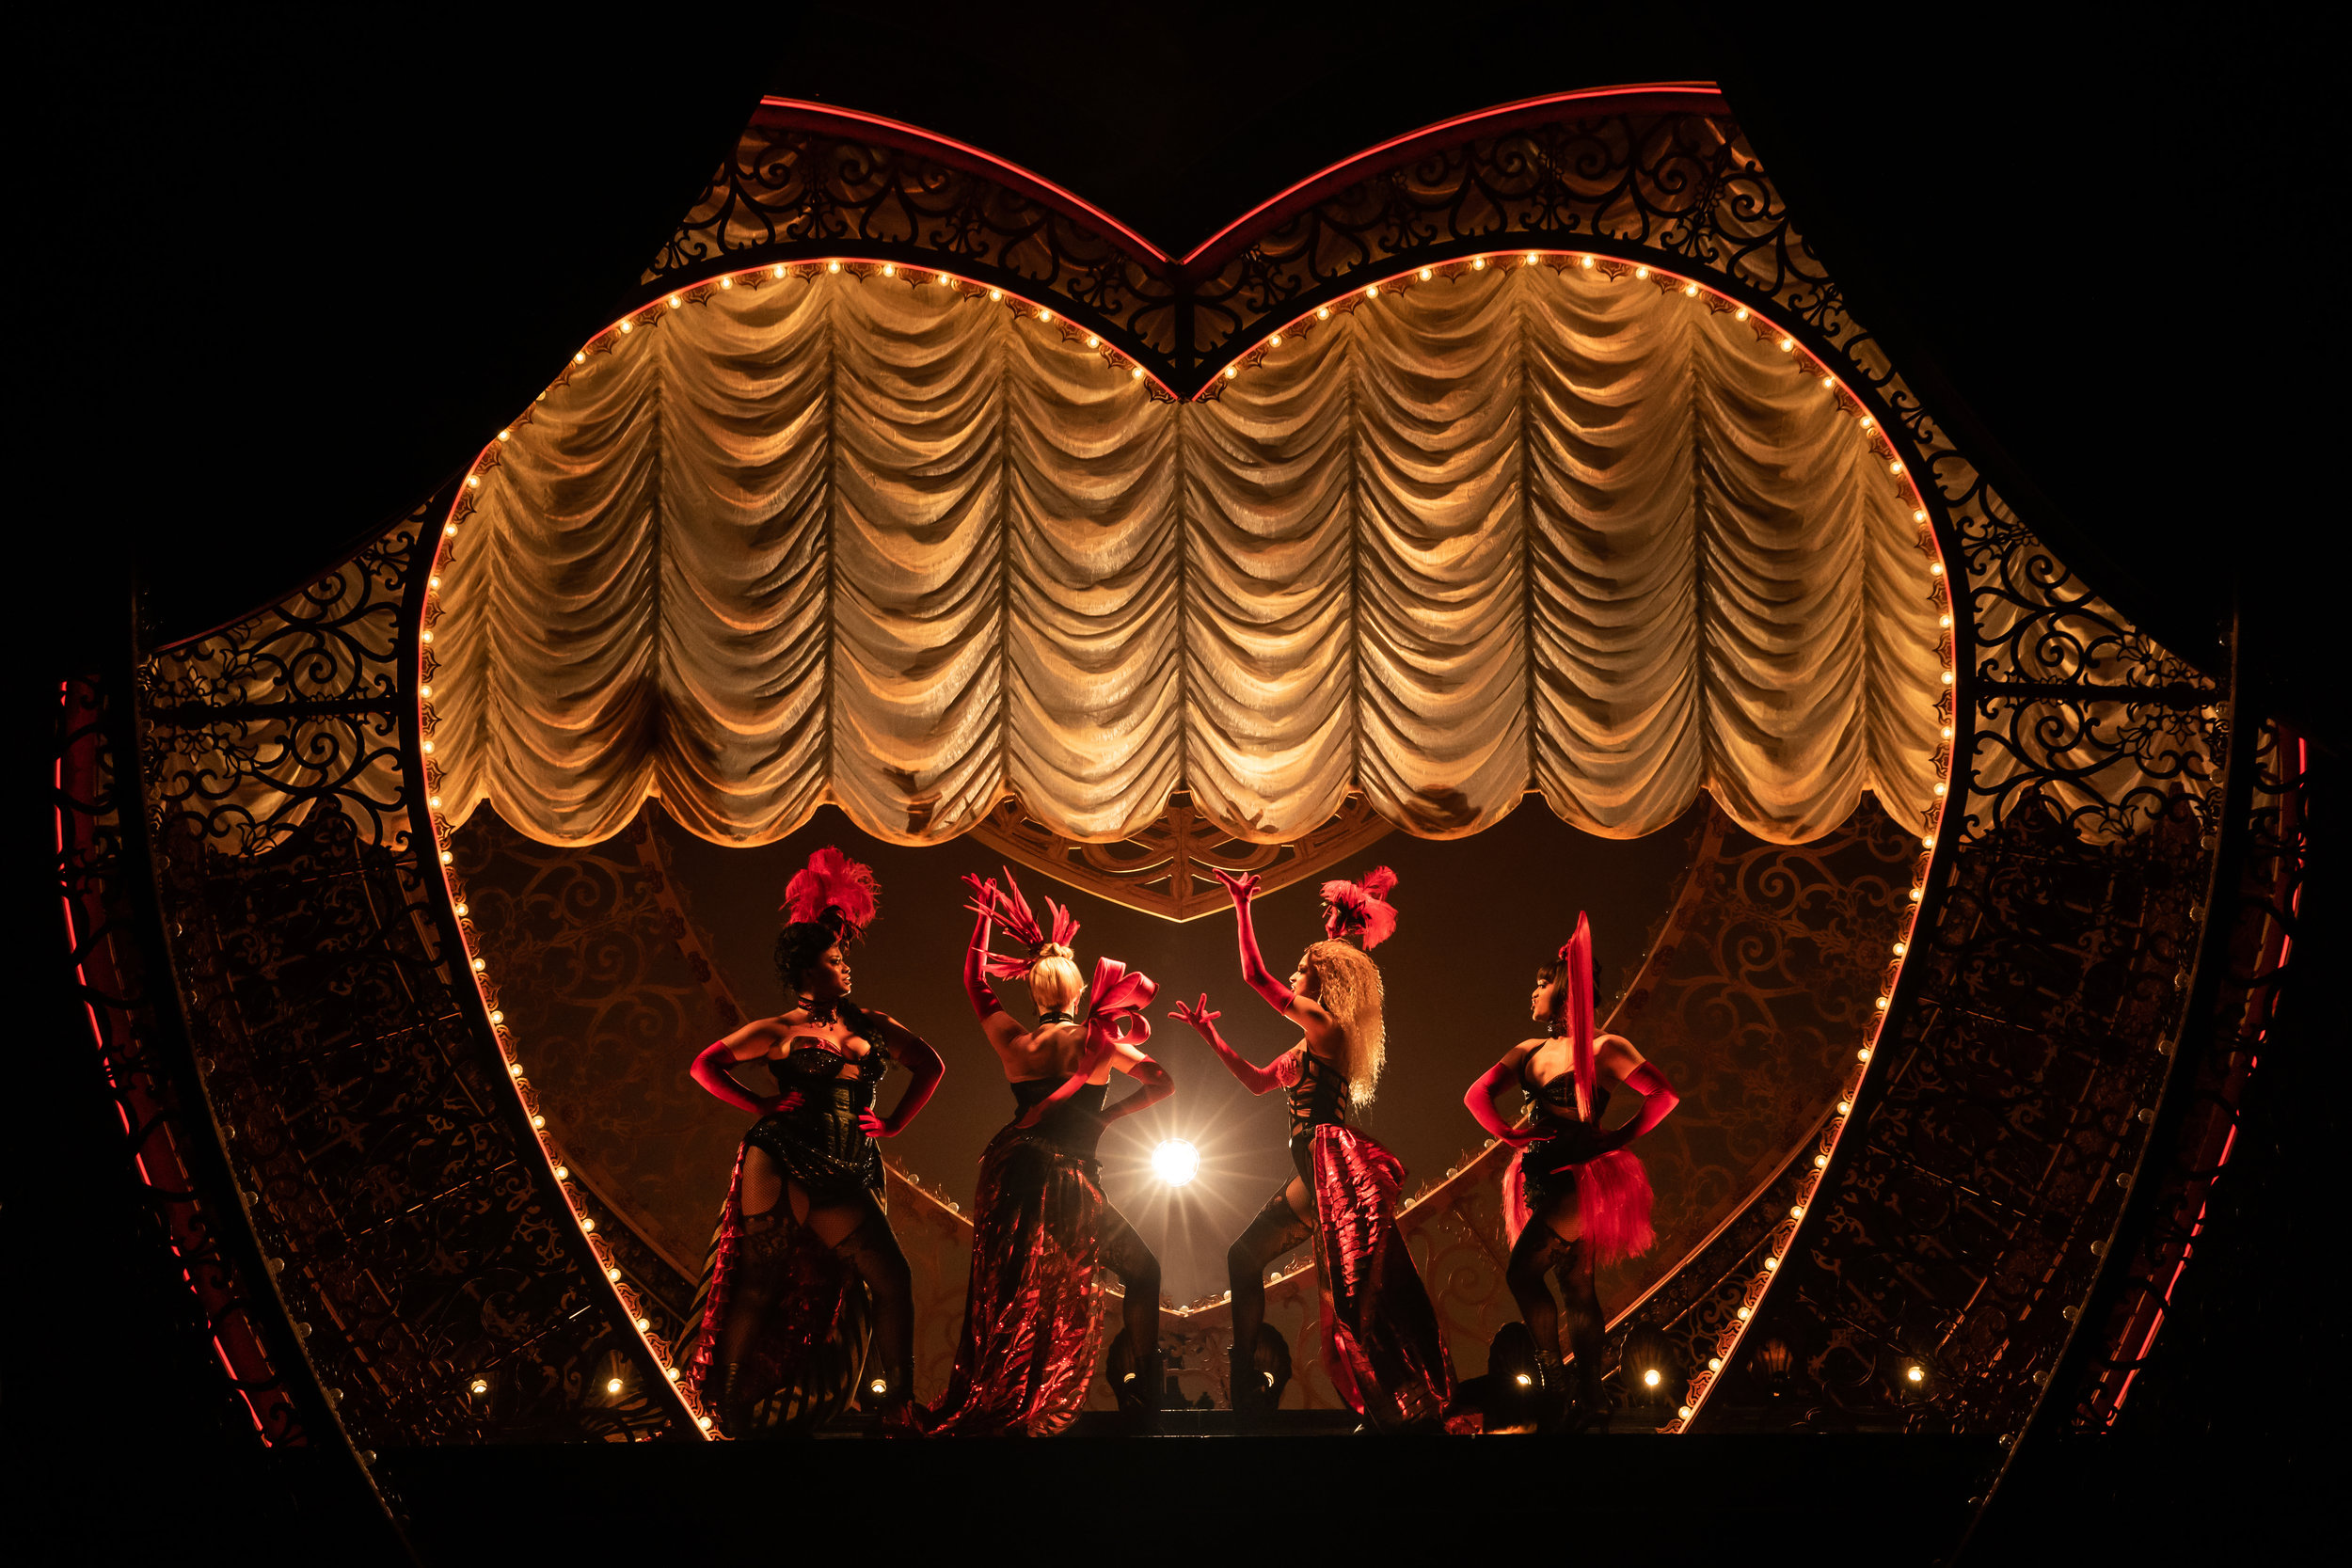 Jacqueline B. Arnold as La Chocolat, Robyn Hurder as Nini, Holly James as Arabia and Jeigh Madjus as Baby Doll in  Moulin Rouge! The Musical  (Photo by Matthew Murphy)